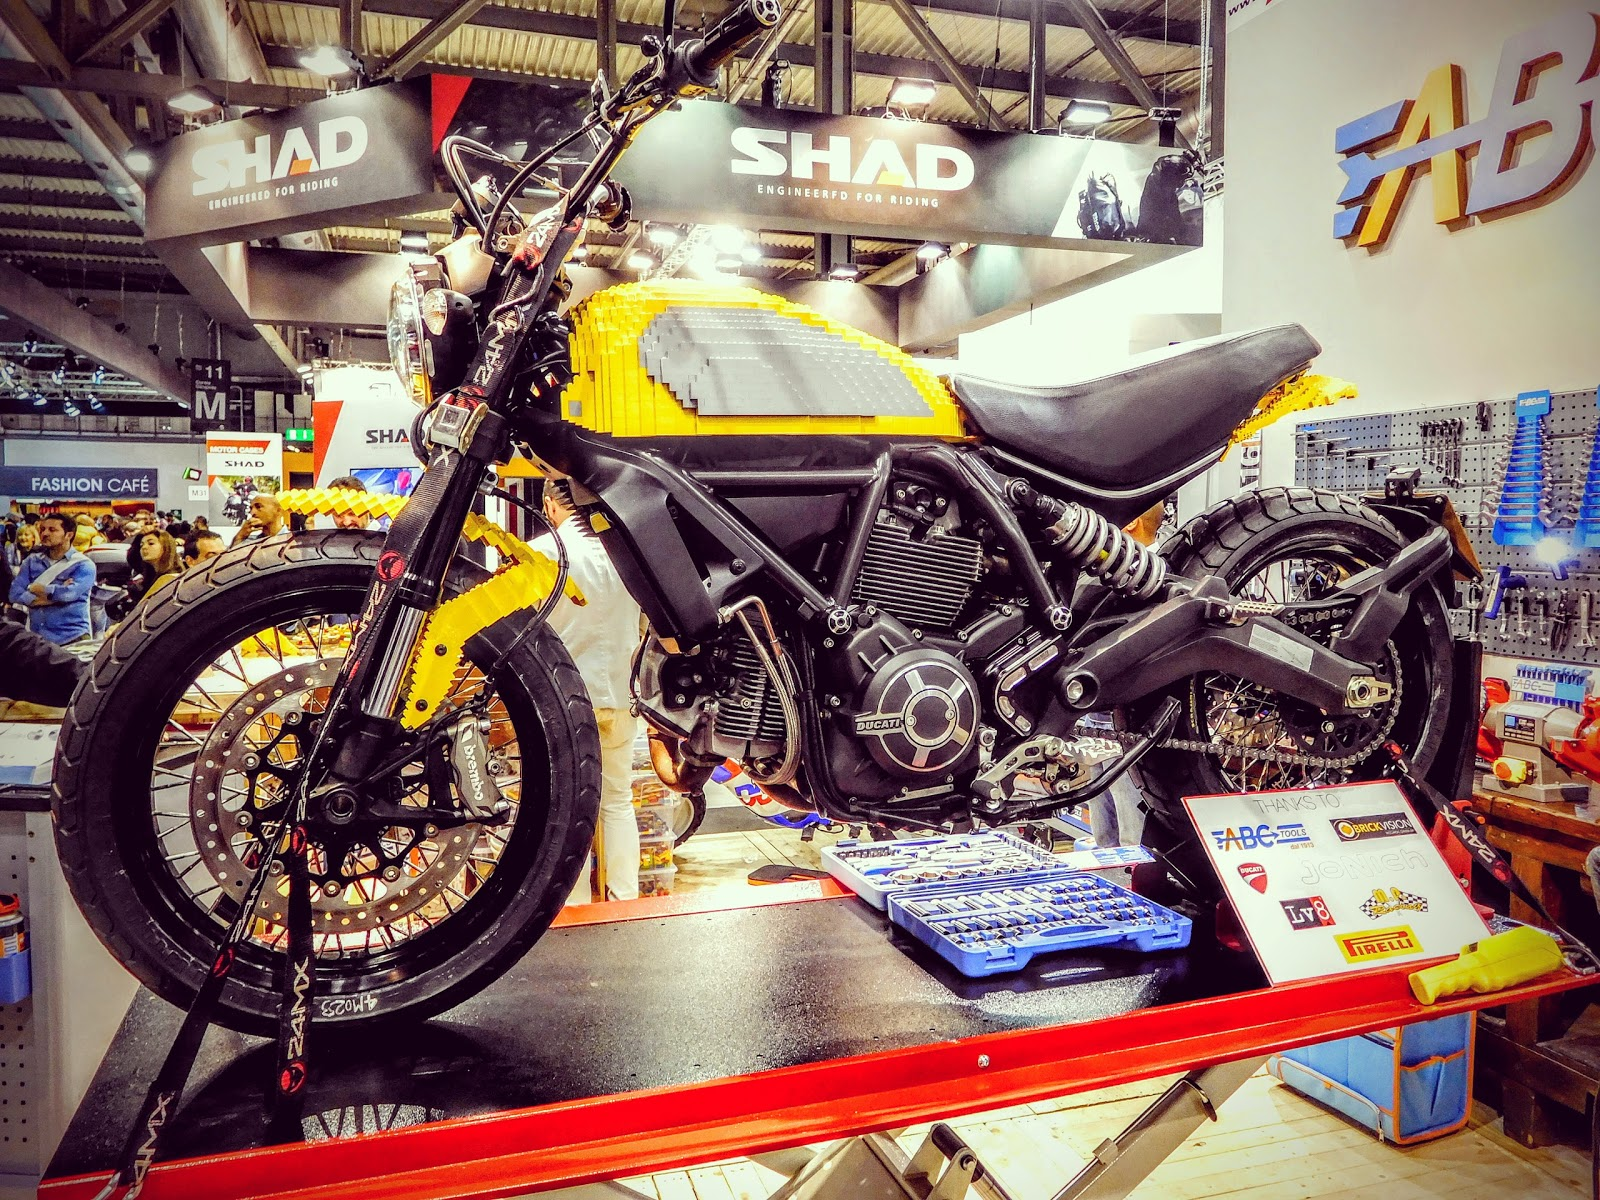 Ducati Travelogue Of Tigh Loughheads Motorcycle Adventures In Nyc